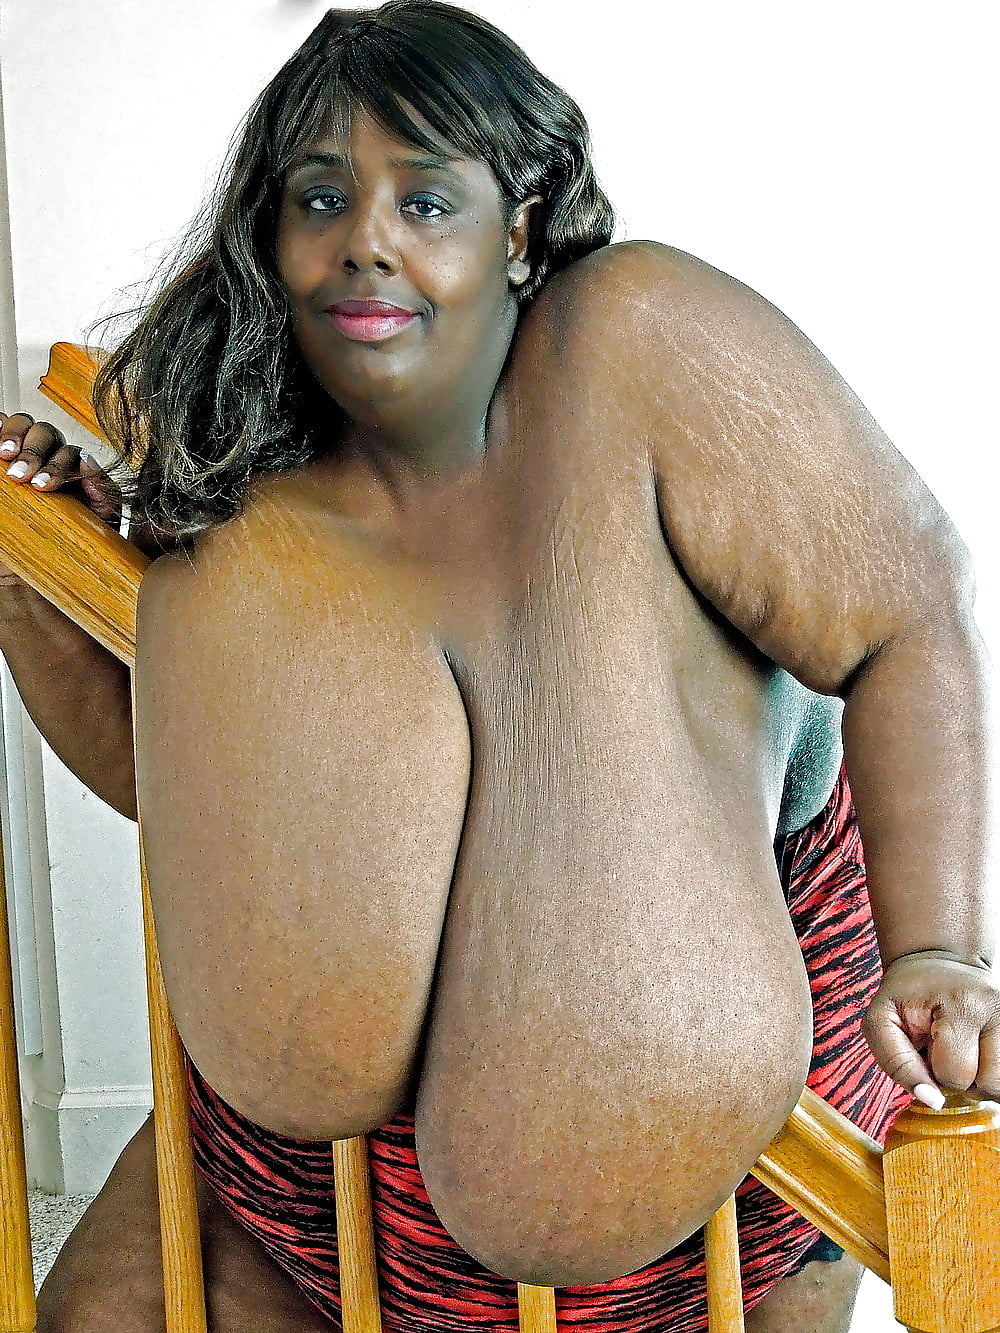 See And Save As Black Women With Big Saggy Tits Porn Pict